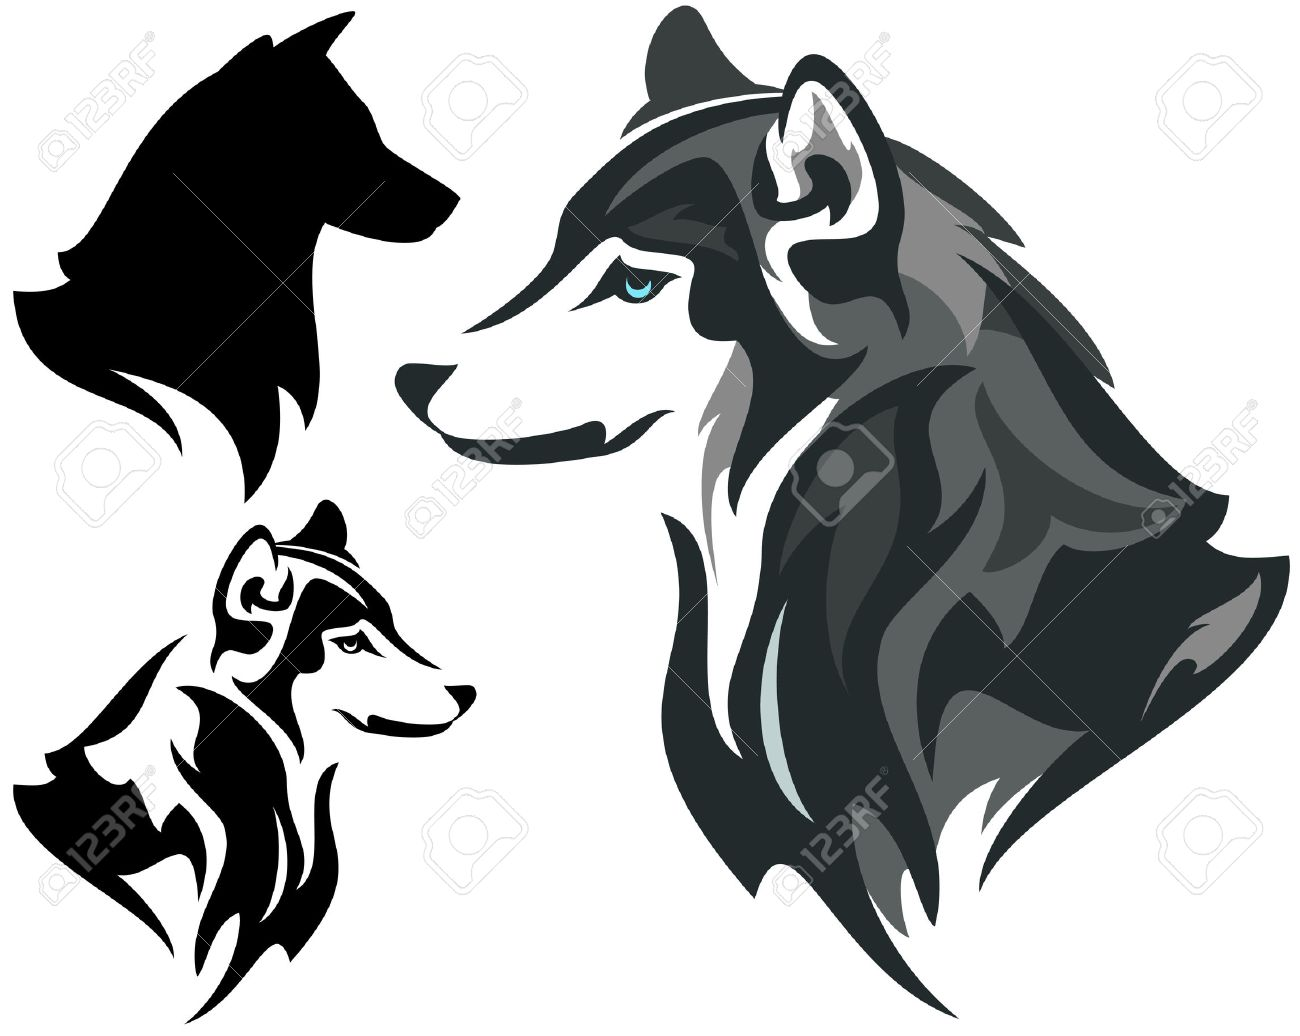 husky dog design - animal head side view illustration in color and monochrome plus silhouette - 29291364